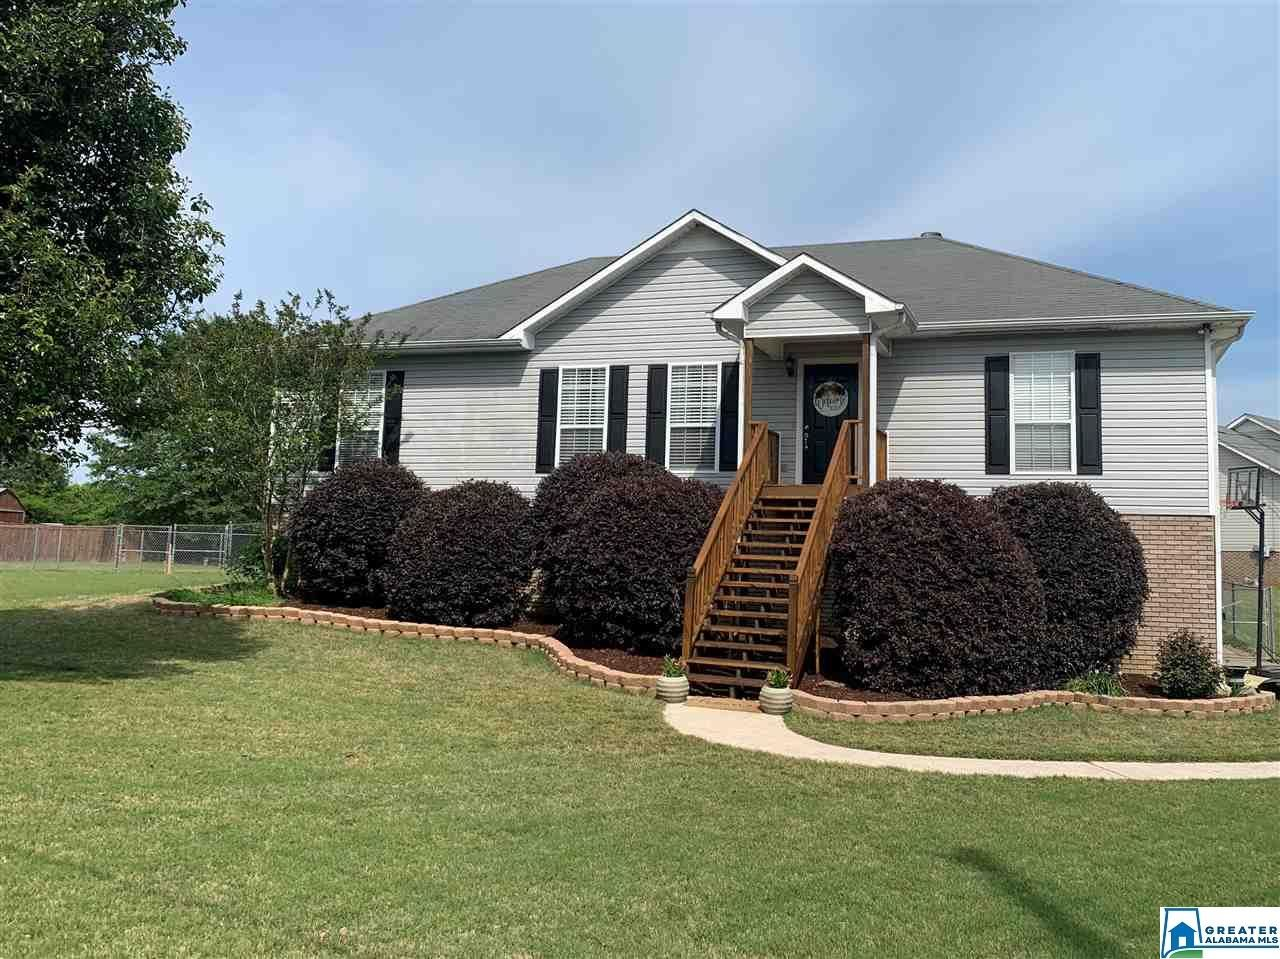 500 PARK AVE, Kimberly, AL 35091 - MLS#: 883159